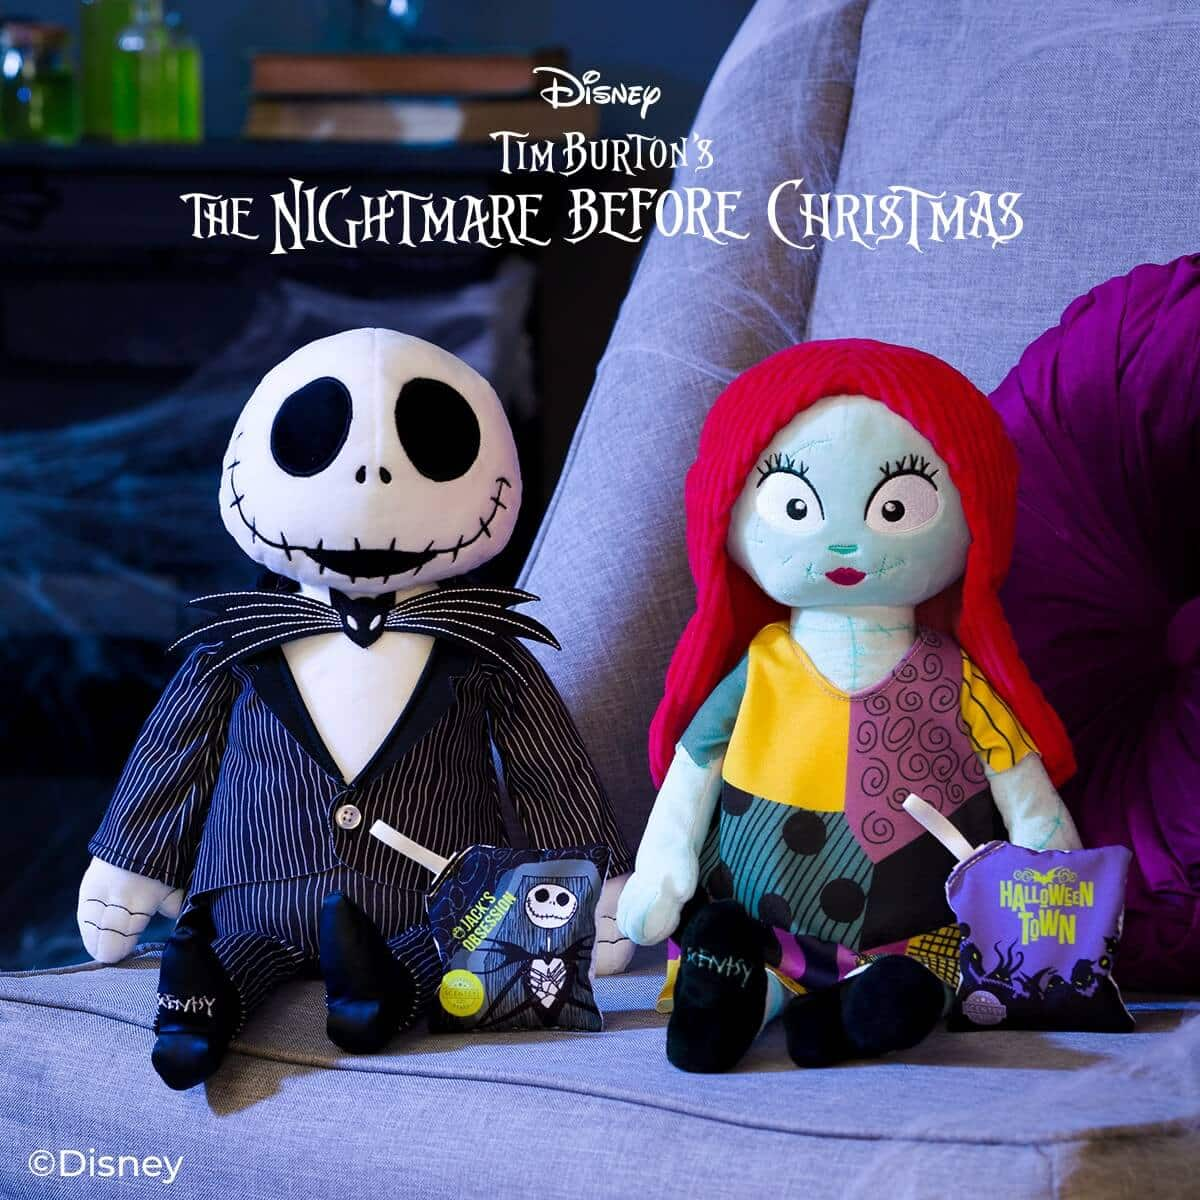 JACK SKELLINGTON AND SALLY SCENTSY BUDDY HALLOWEENTOWN 1